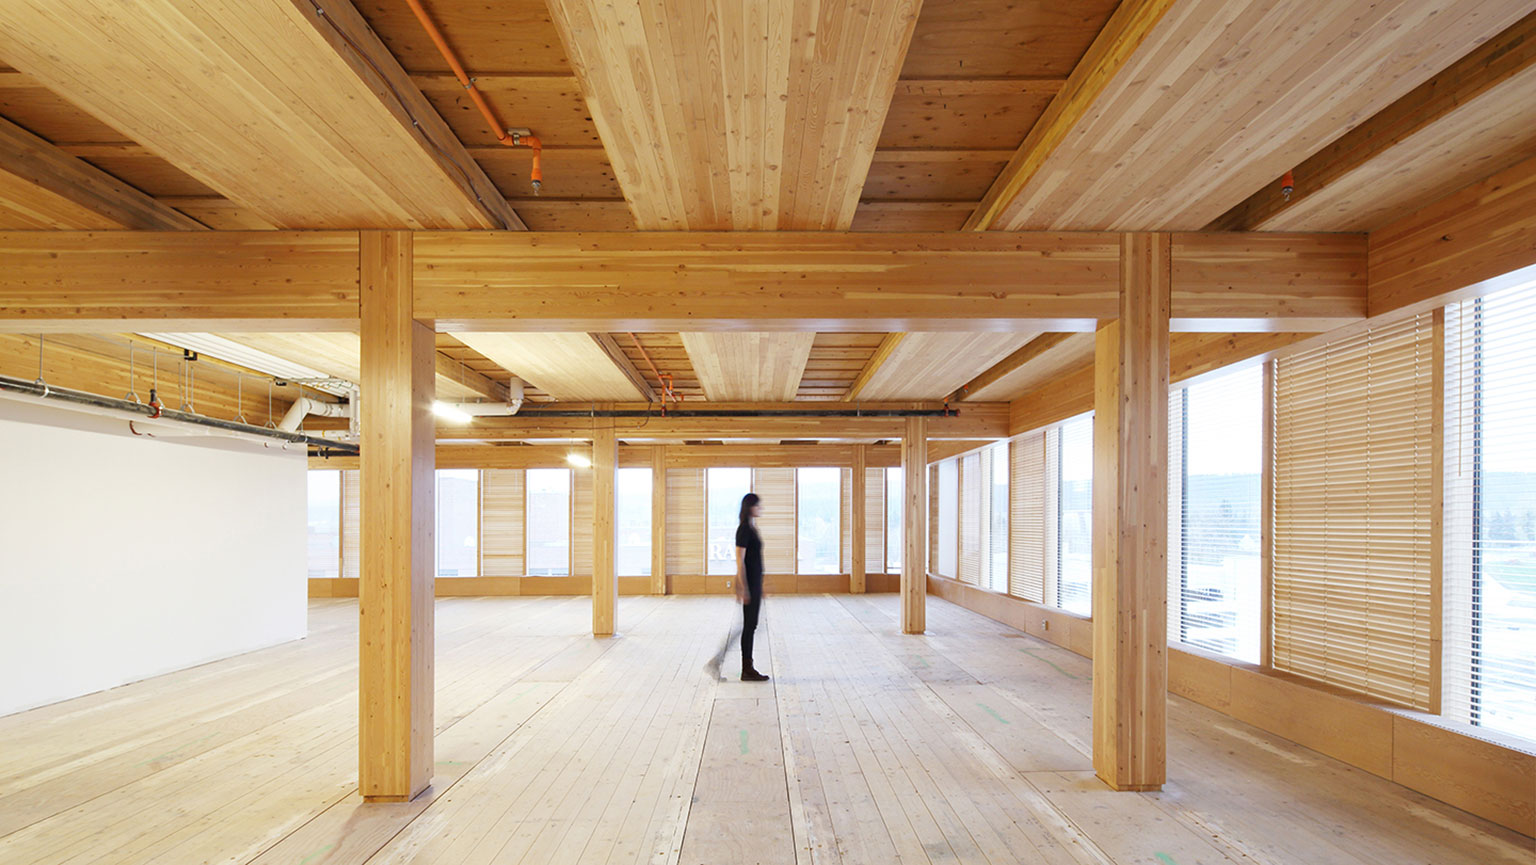 Photograph by Ema Peter/courtesy of Michael Green Architecture